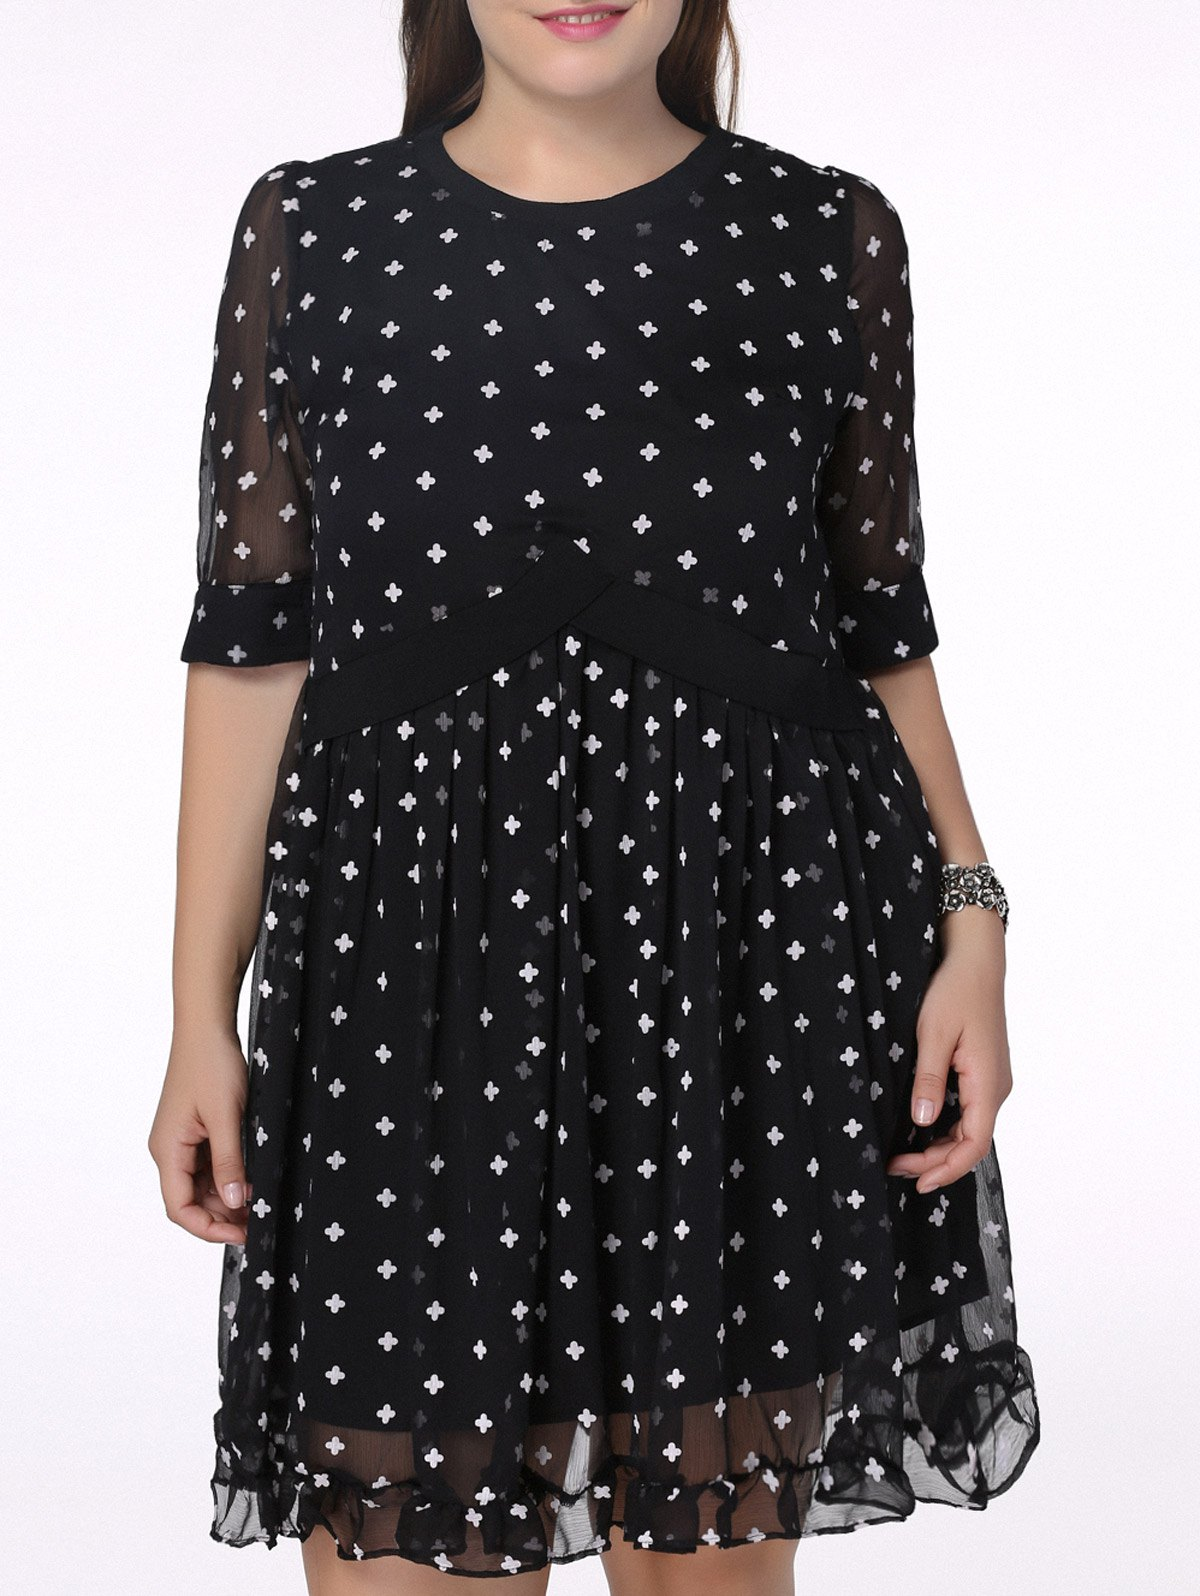 Chic Plus Size Flounced Polka Dot Print Women's Dress - BLACK 5XL